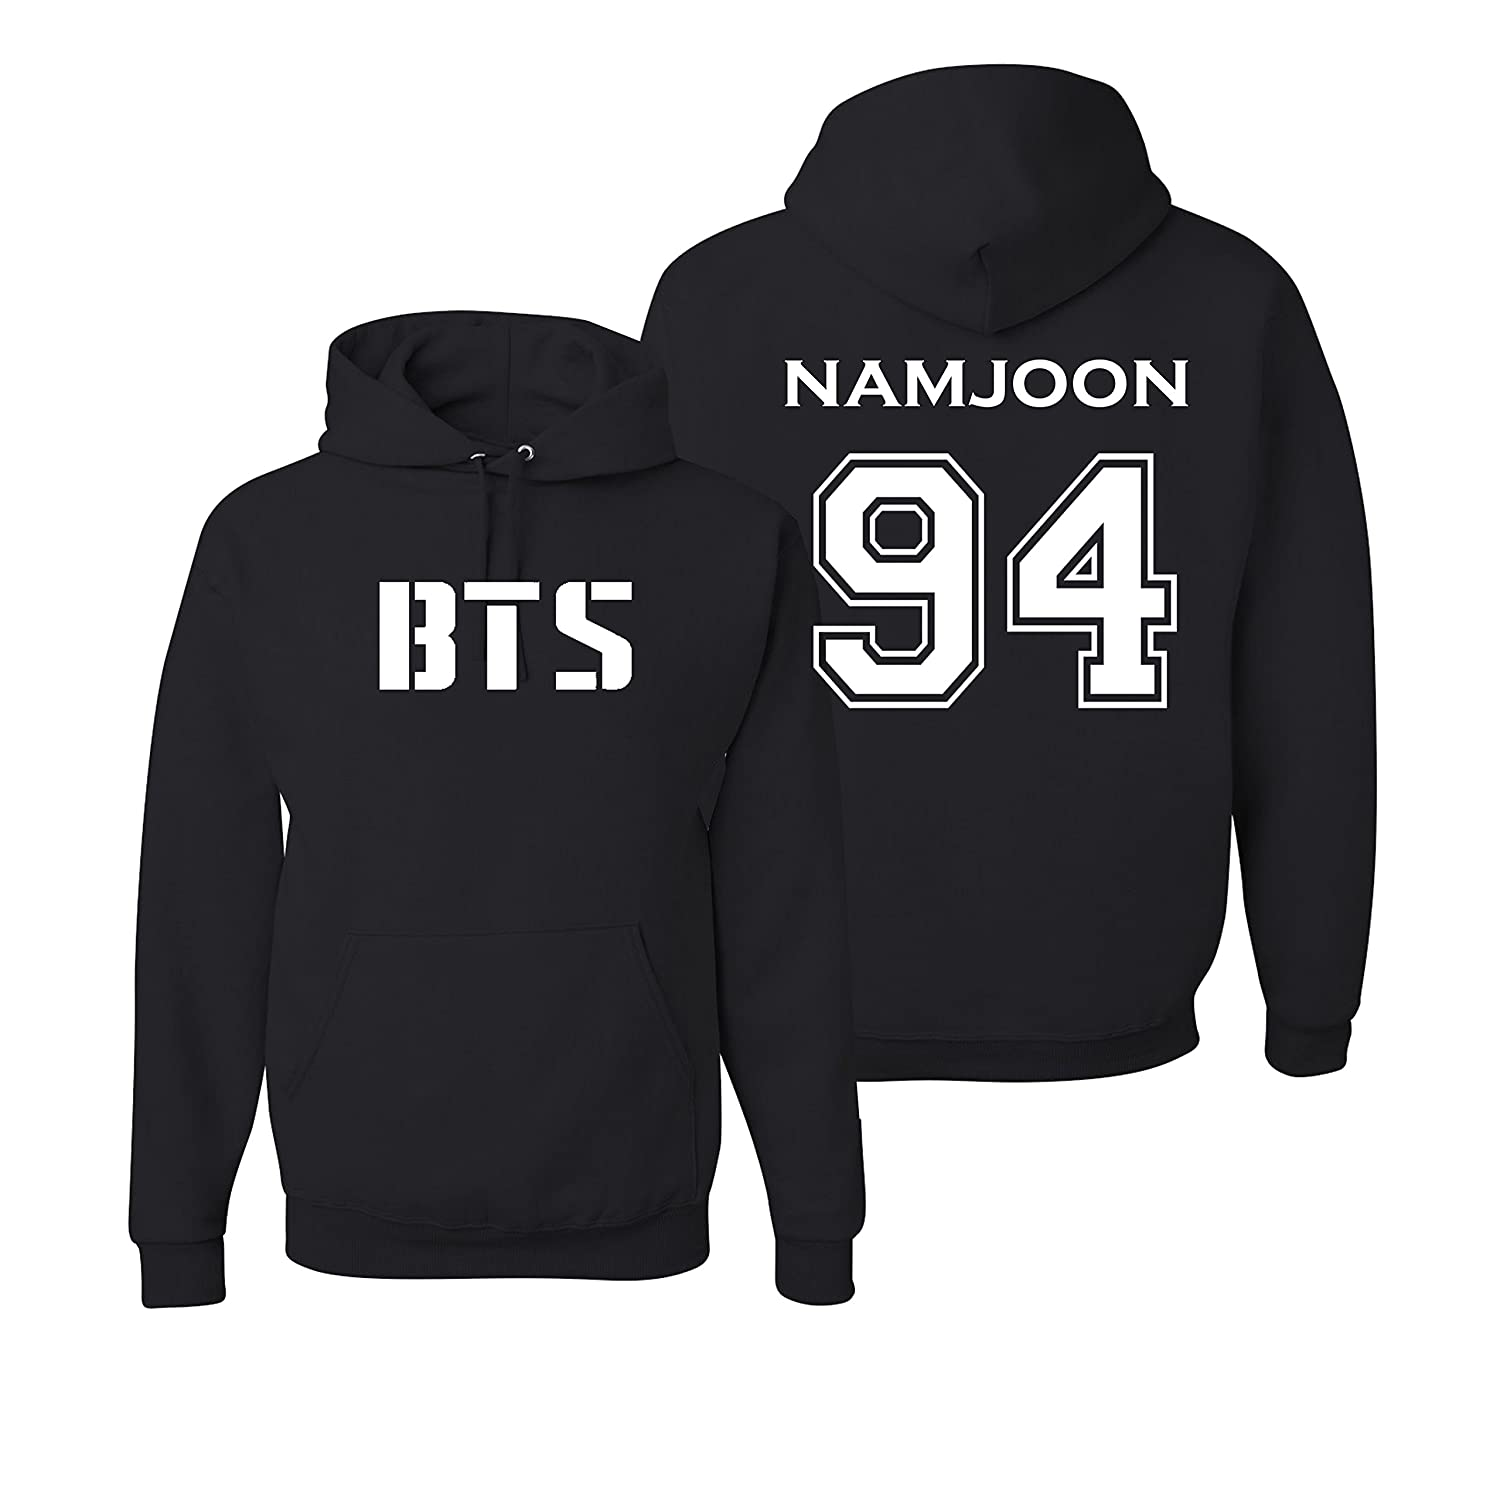 Adult BTS Namjoon 94 Hooded Sweatshirt